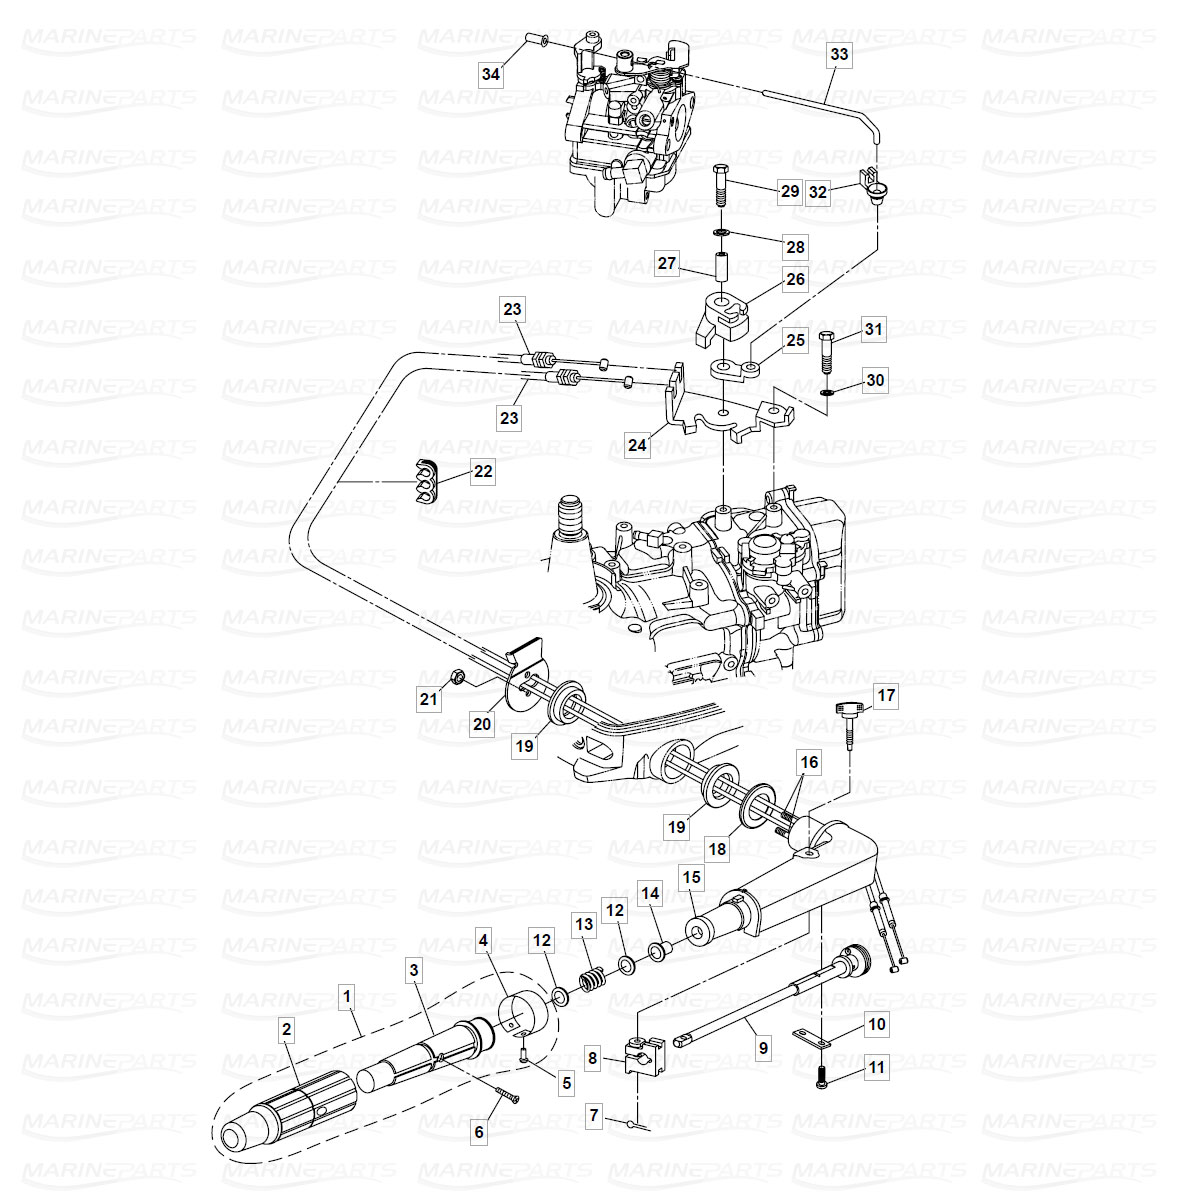 Exploded view handle  & steering, Parsun 6 hp